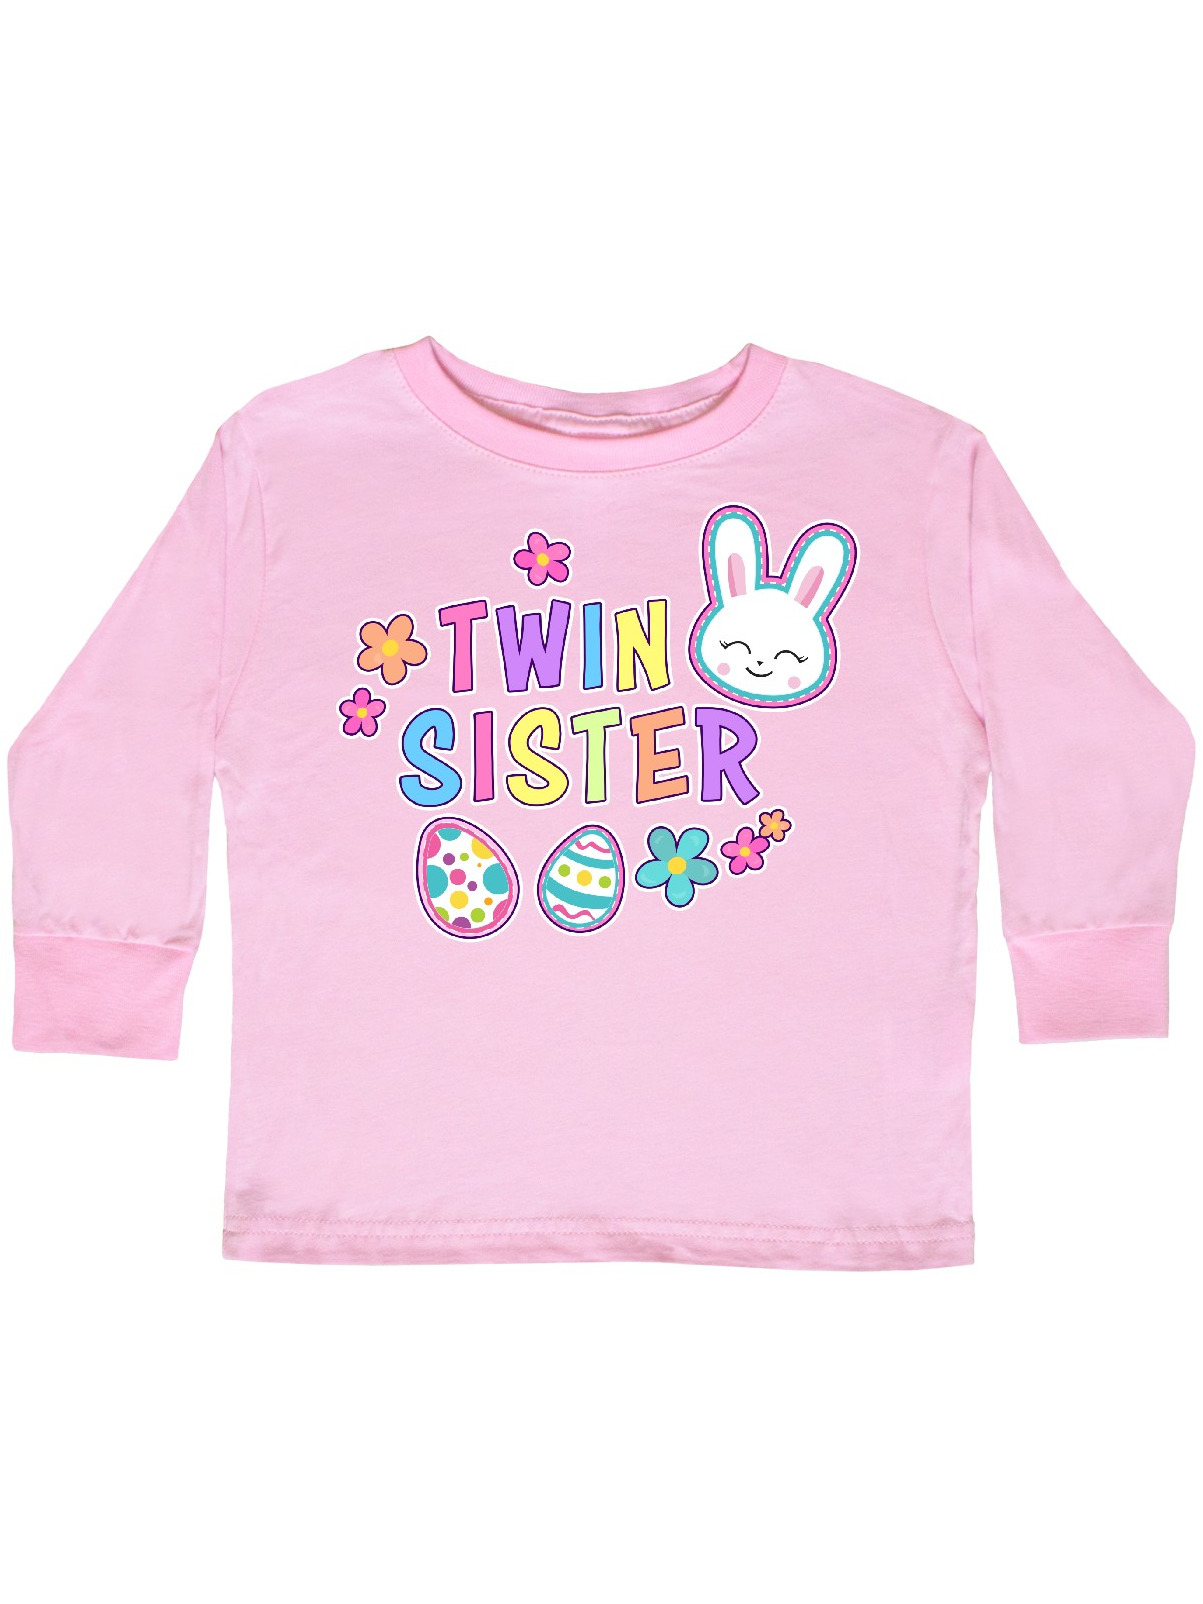 inktastic Baby Sister with Bunny Face and Easter Eggs Toddler T-Shirt